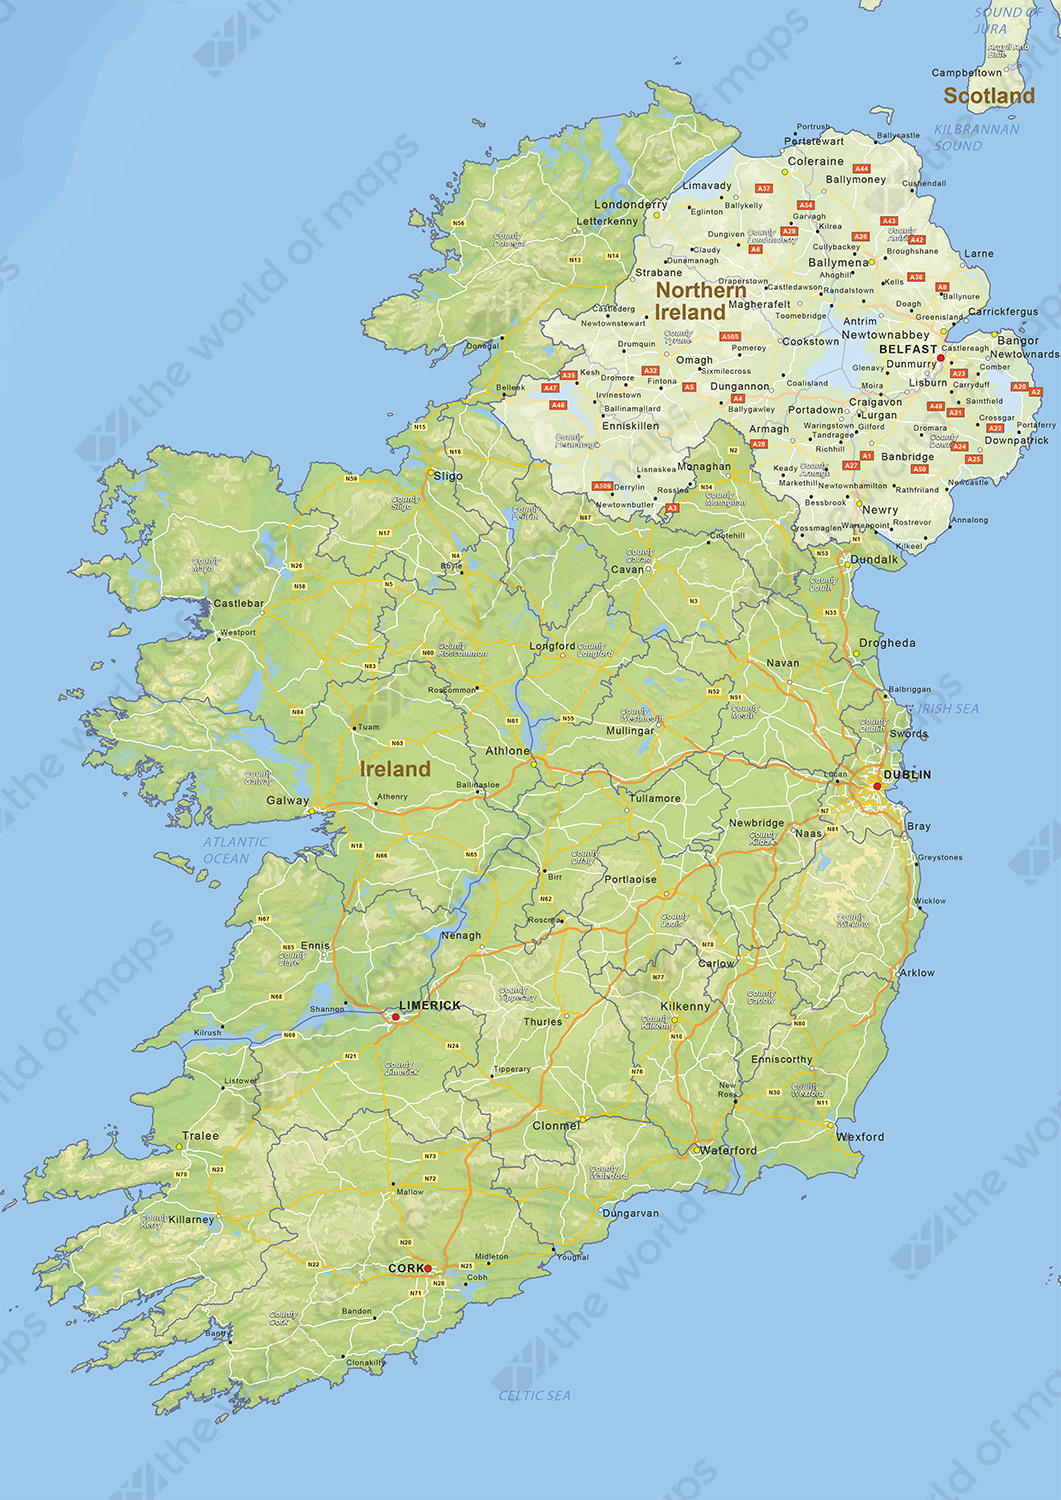 Digital physical map of Ireland